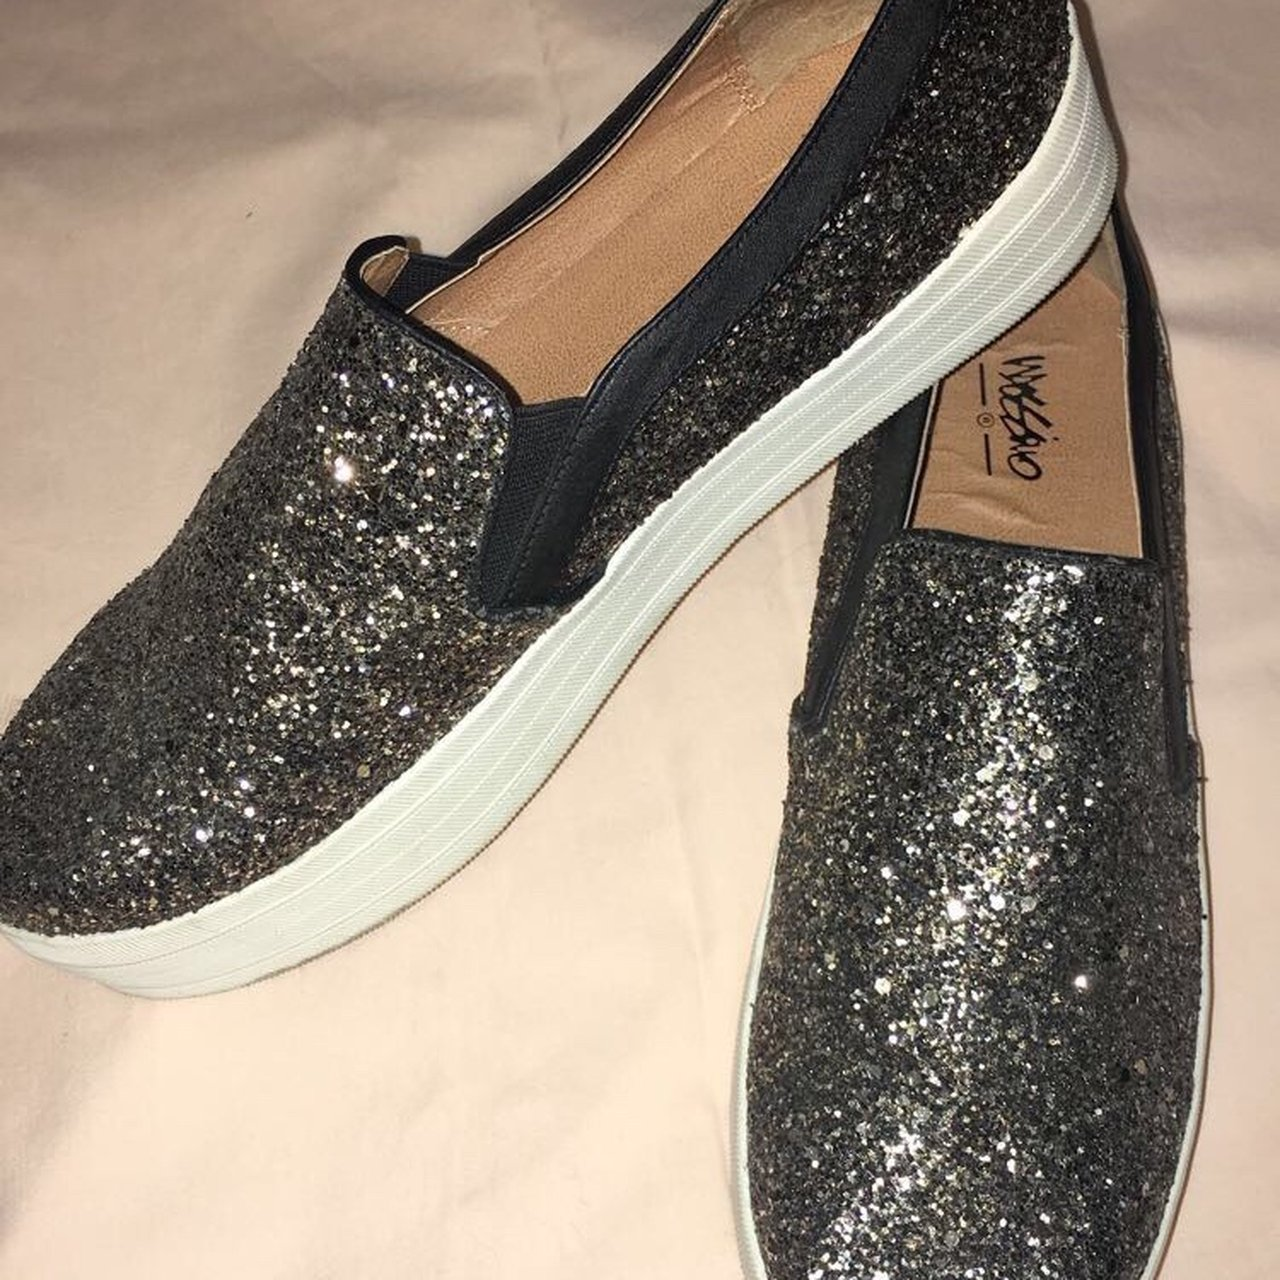 b19386b1dc0f 🖤⭐️Super Sparkly Slip On Shoes⭐ 🖤 Size 11. Great barely - Depop